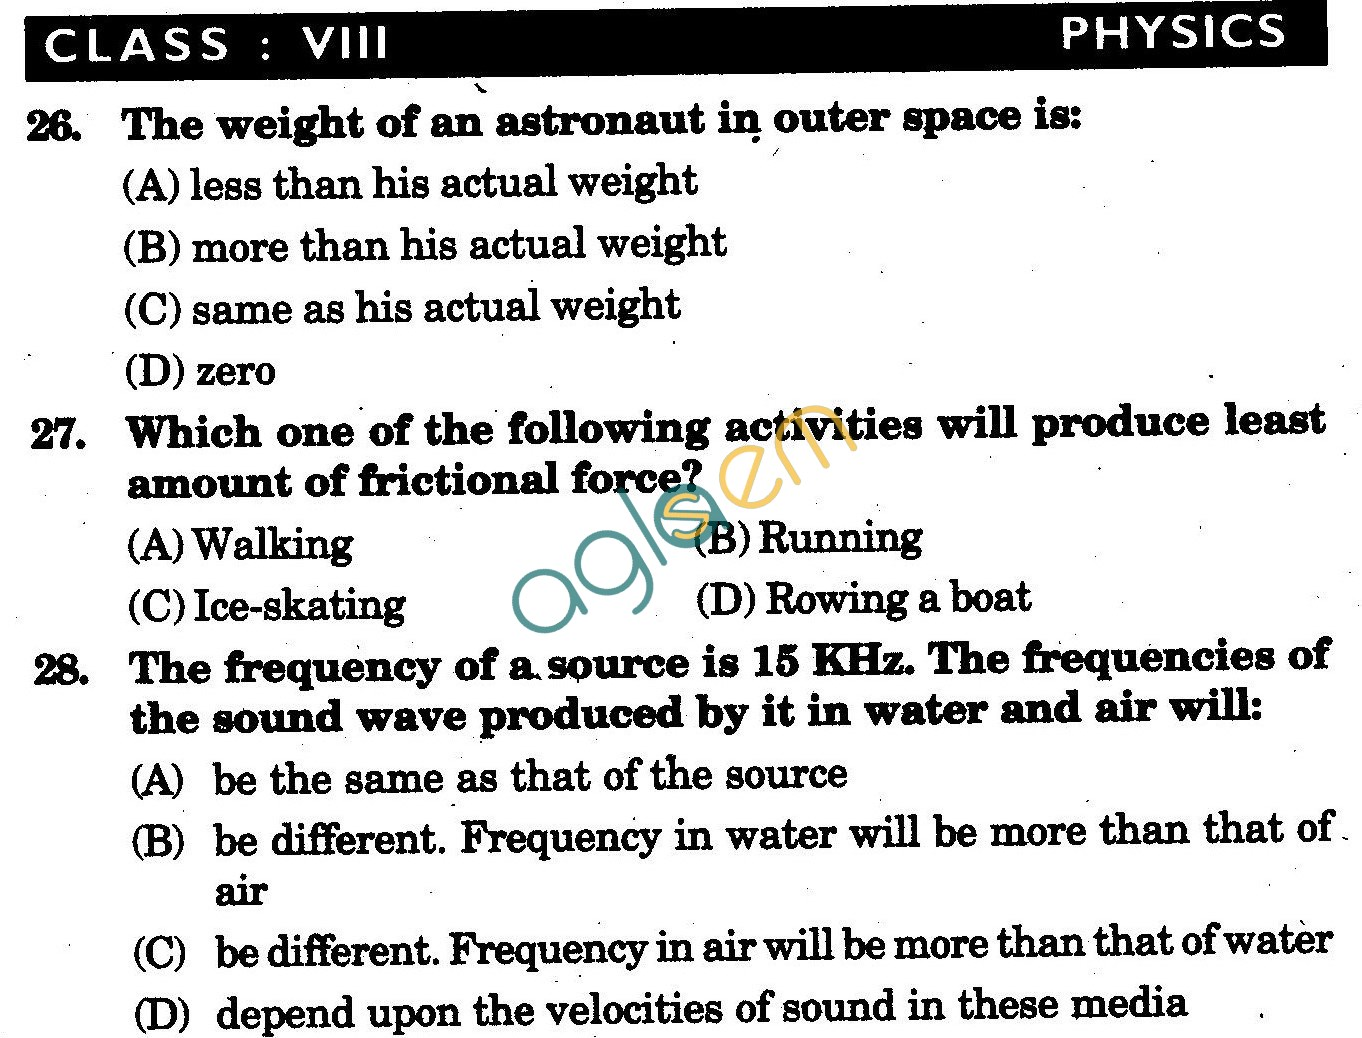 NSTSE 2009 Class VIII Question Paper with Answers - Physics